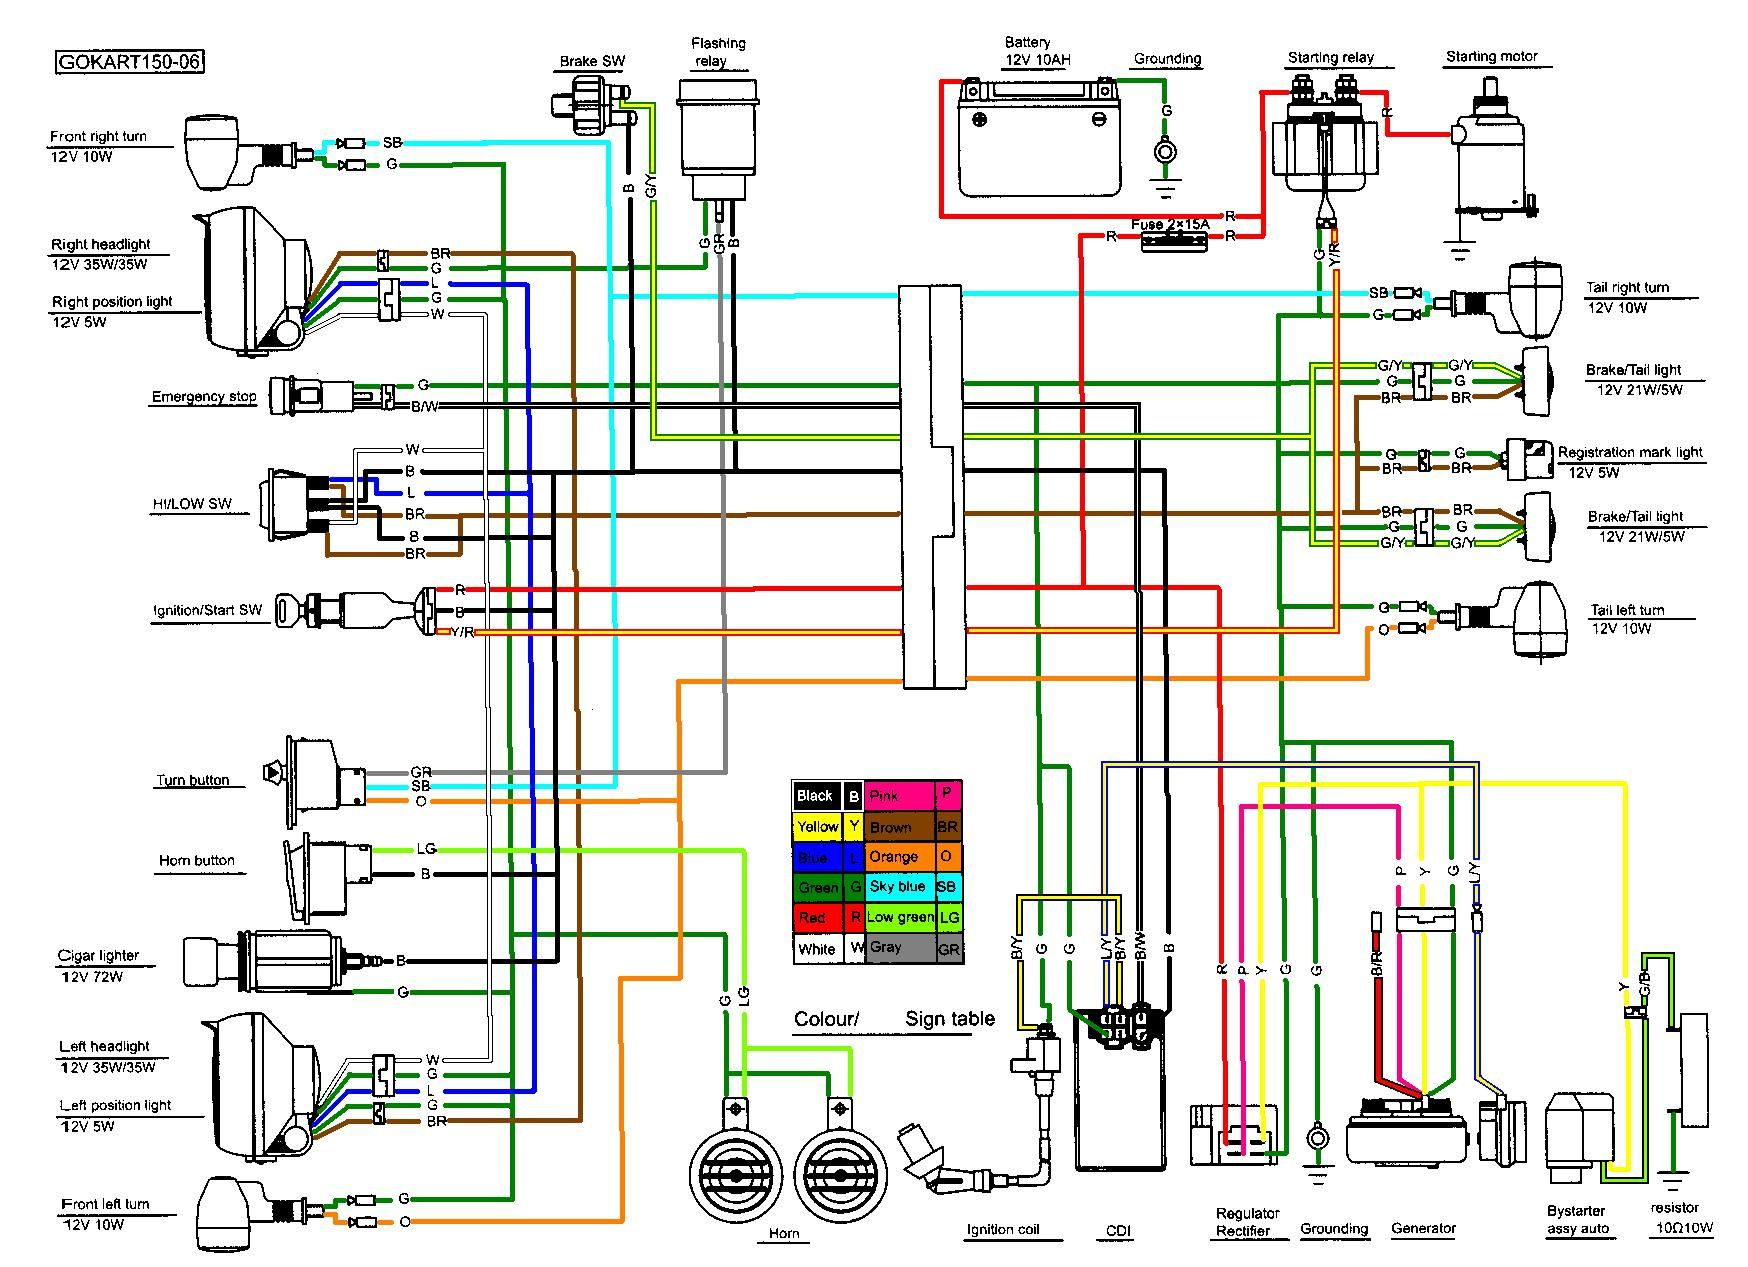 cy50 a wiring diagram tank scooter wiring diagram wiring diagram data  tank scooter wiring diagram wiring